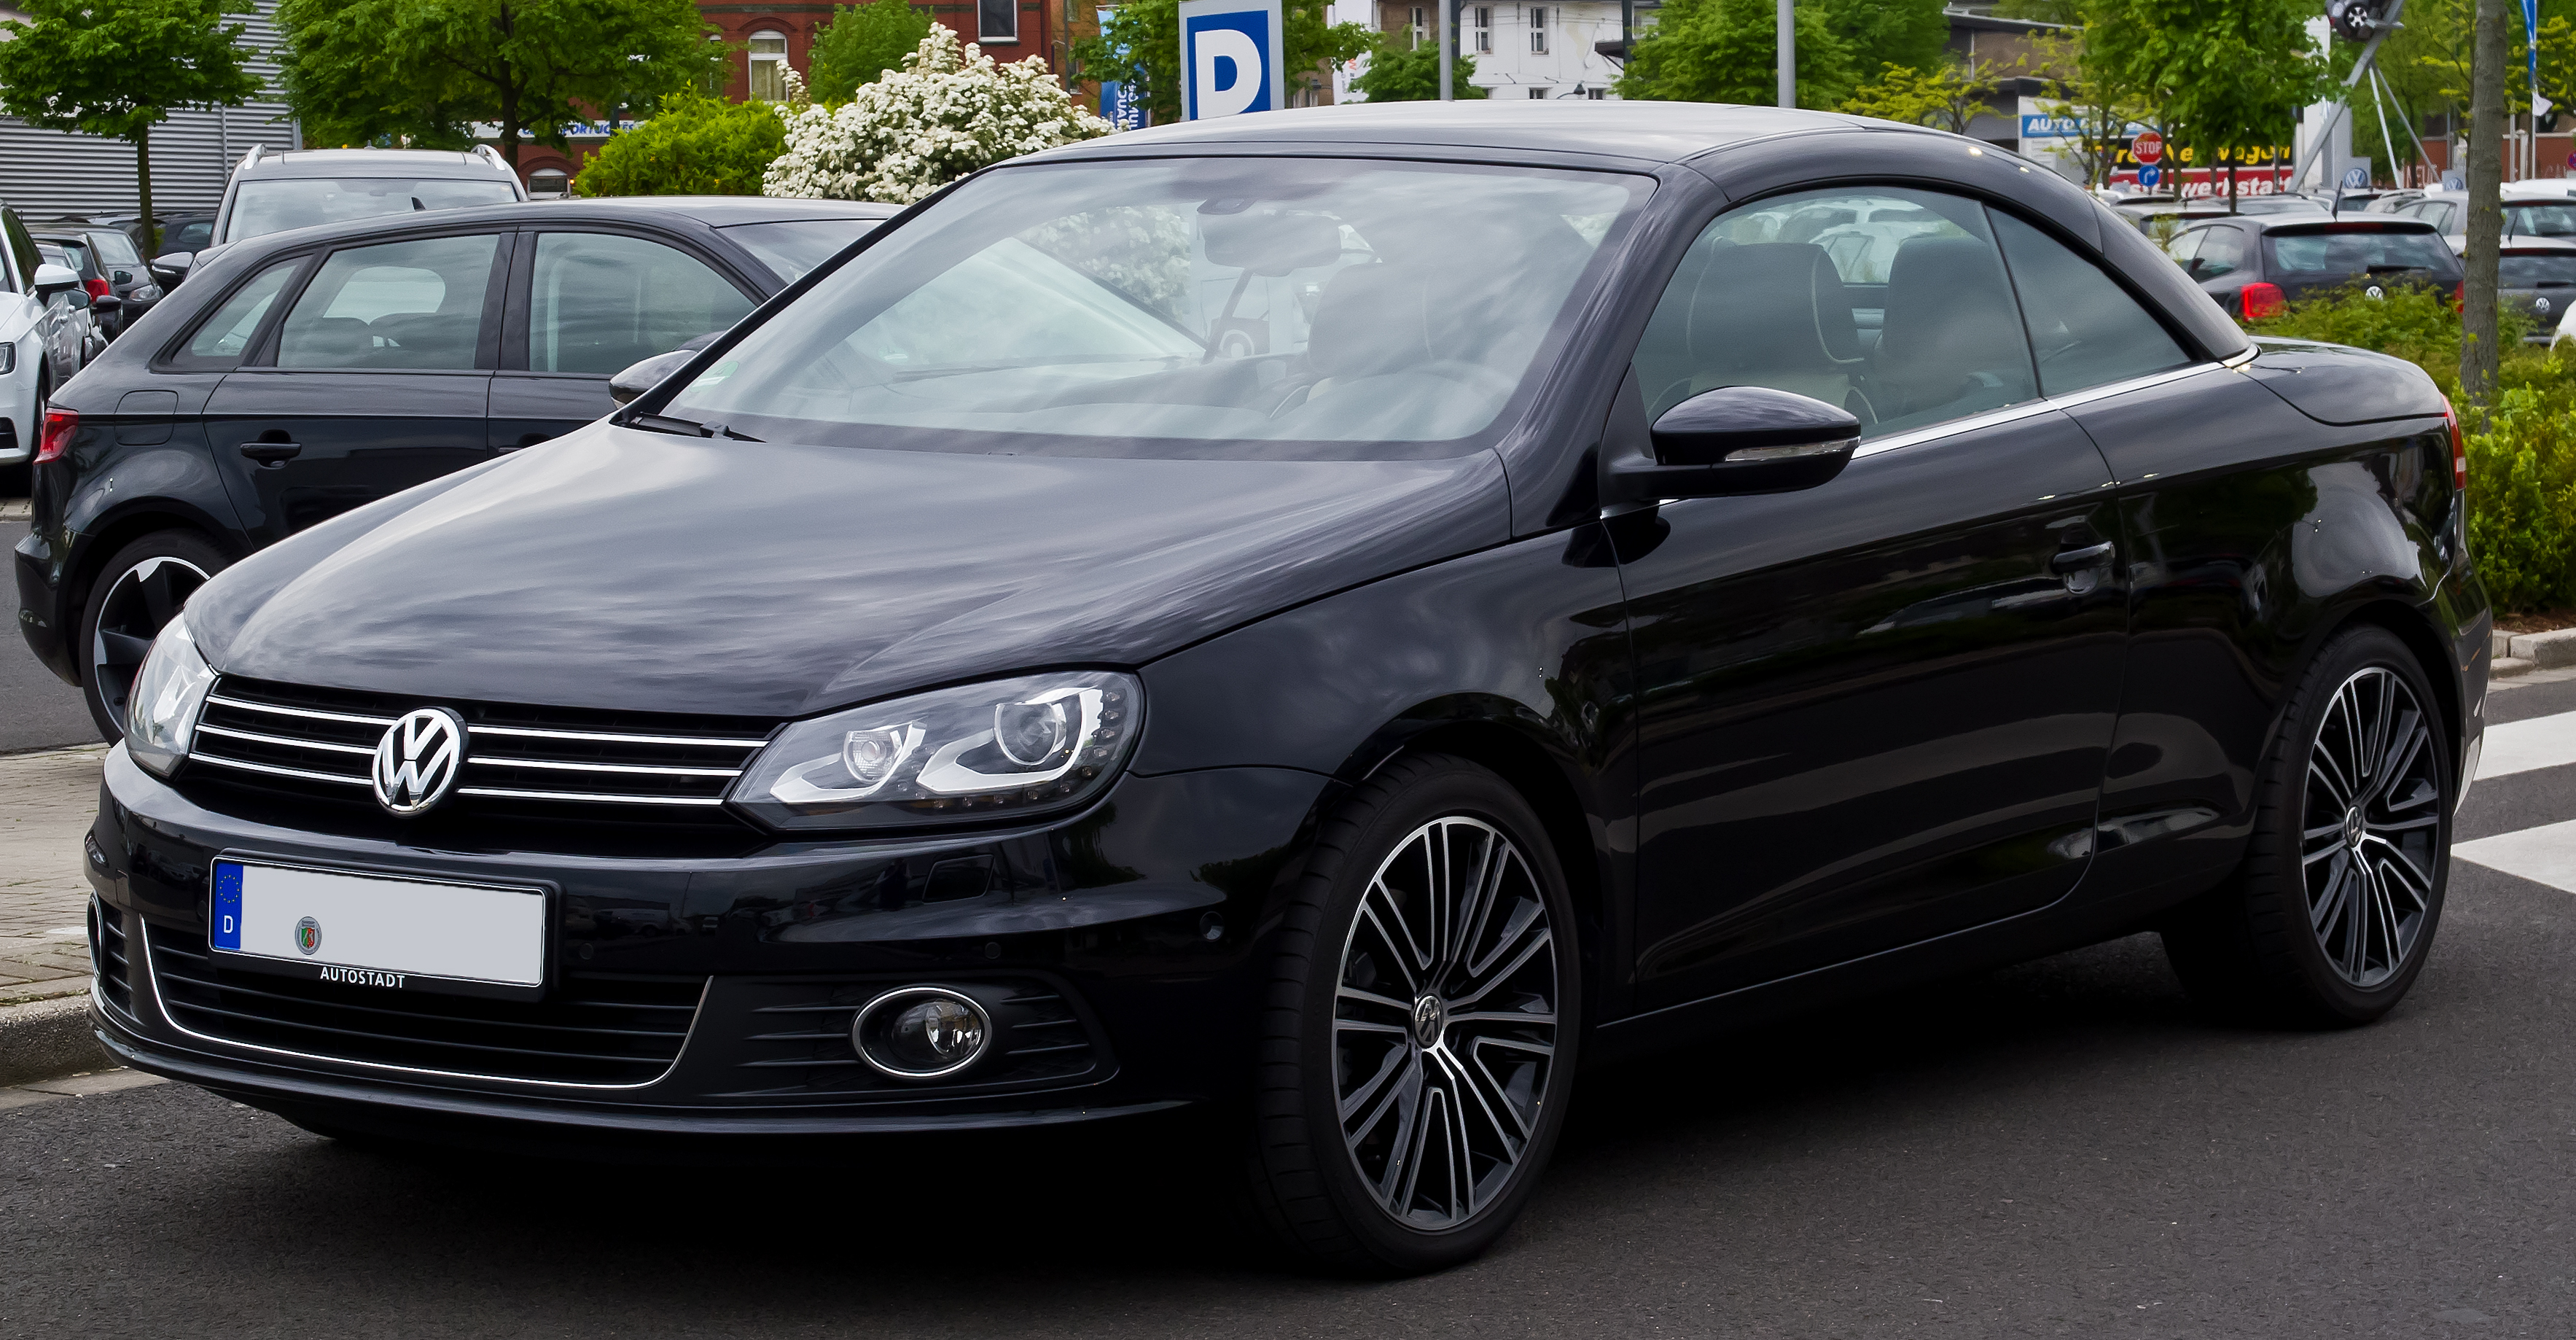 file vw eos 2 0 tsi exclusive facelift frontansicht 17 april 2014 d. Black Bedroom Furniture Sets. Home Design Ideas